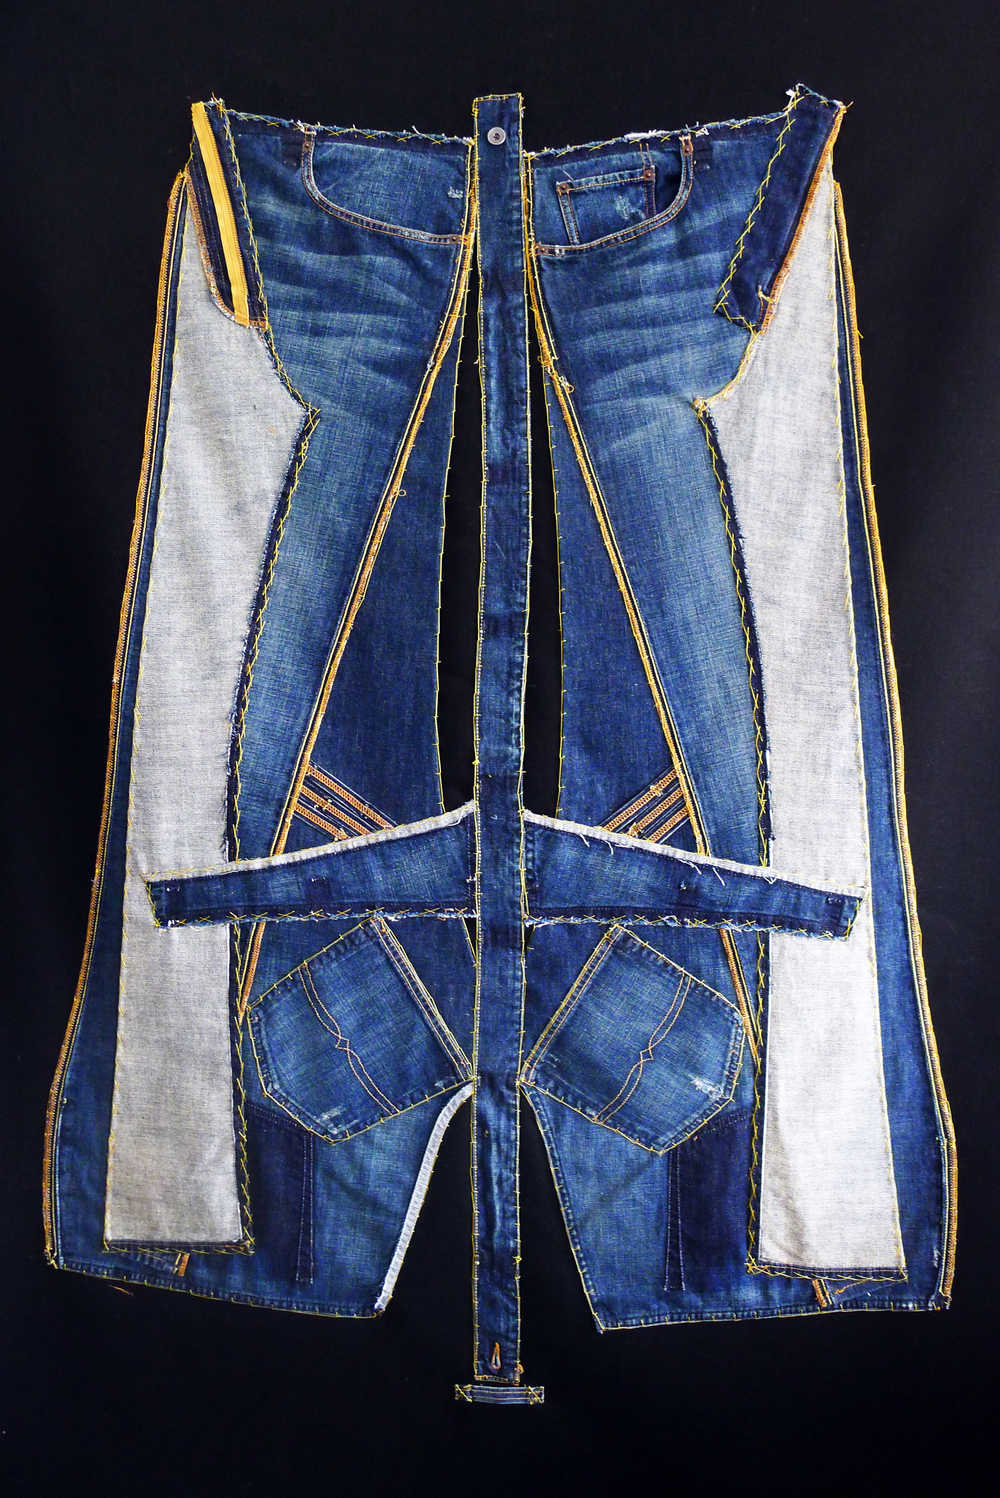 Blue and Gold - deconstructed jeans tapestry.